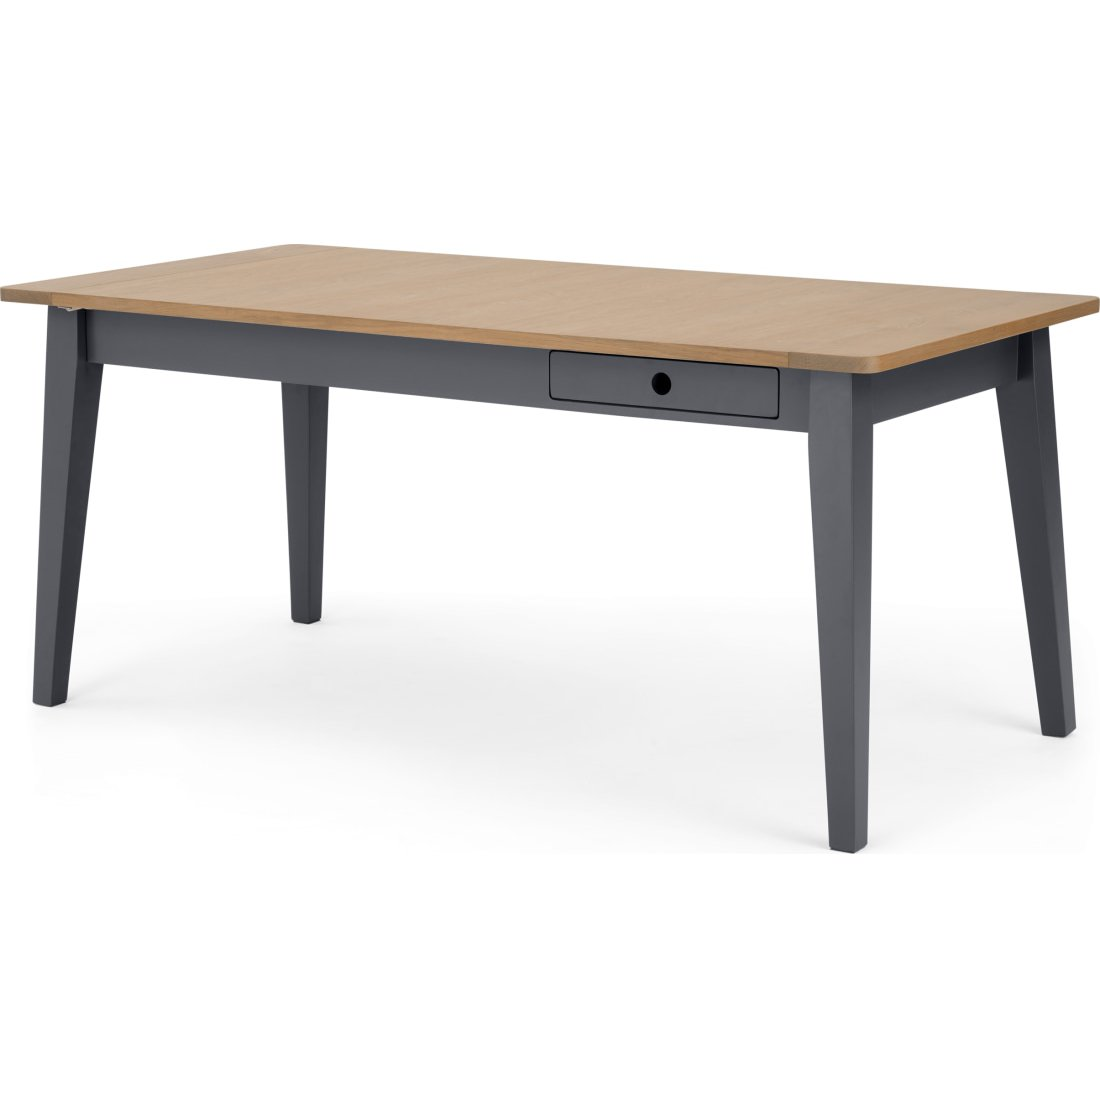 image-Ralph 6 - 8 seat Extending Dining table, Oak and Charcoal